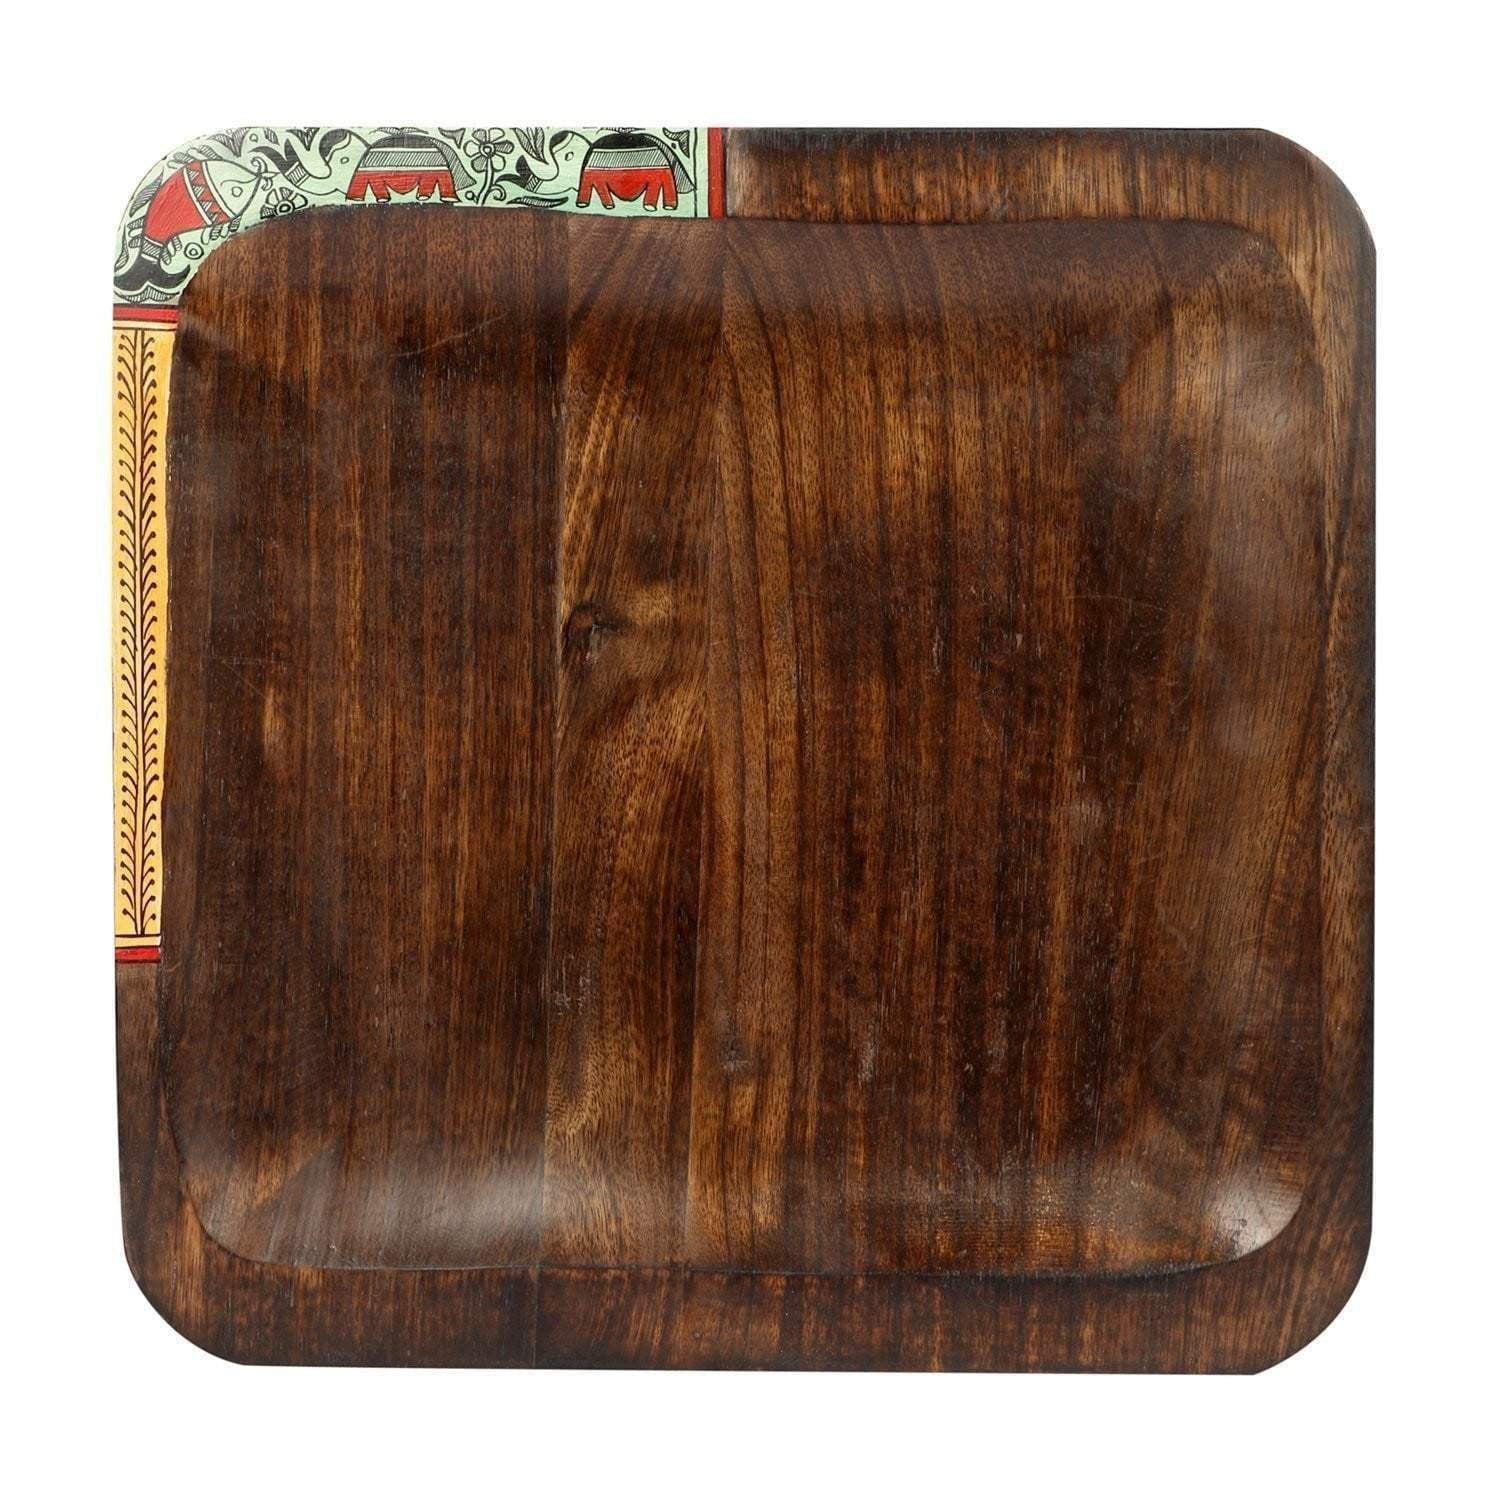 Handcrafted Square Wooden Serving Tray